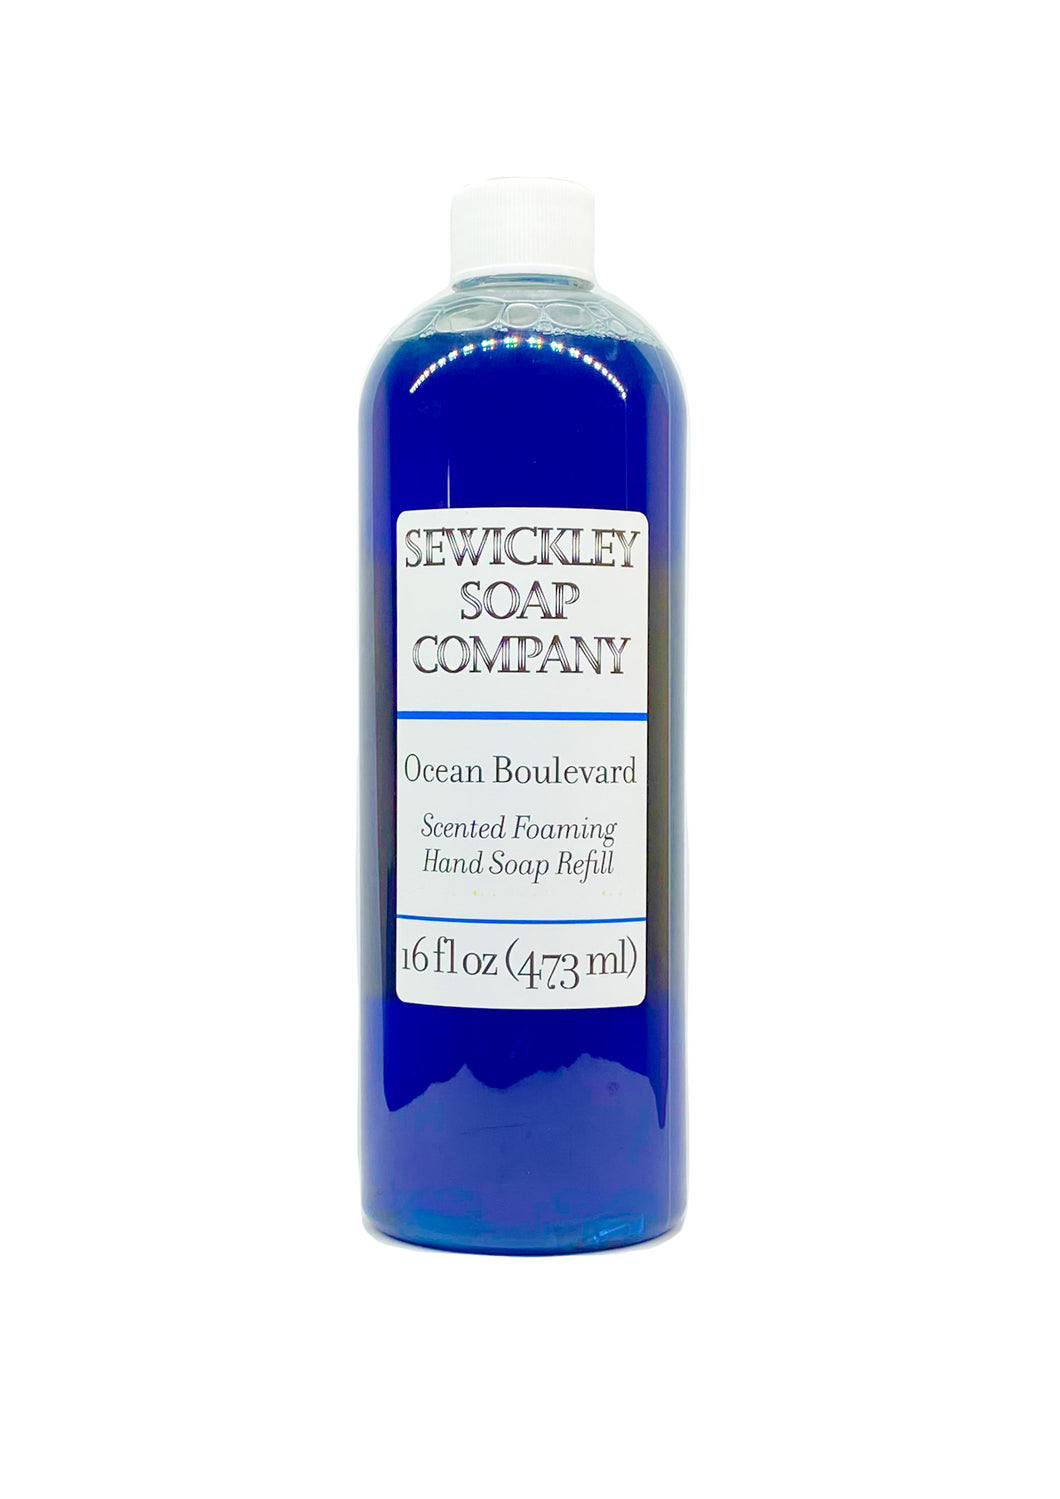 Ocean Boulevard Scented Foaming Hand Soap - 16oz Refill